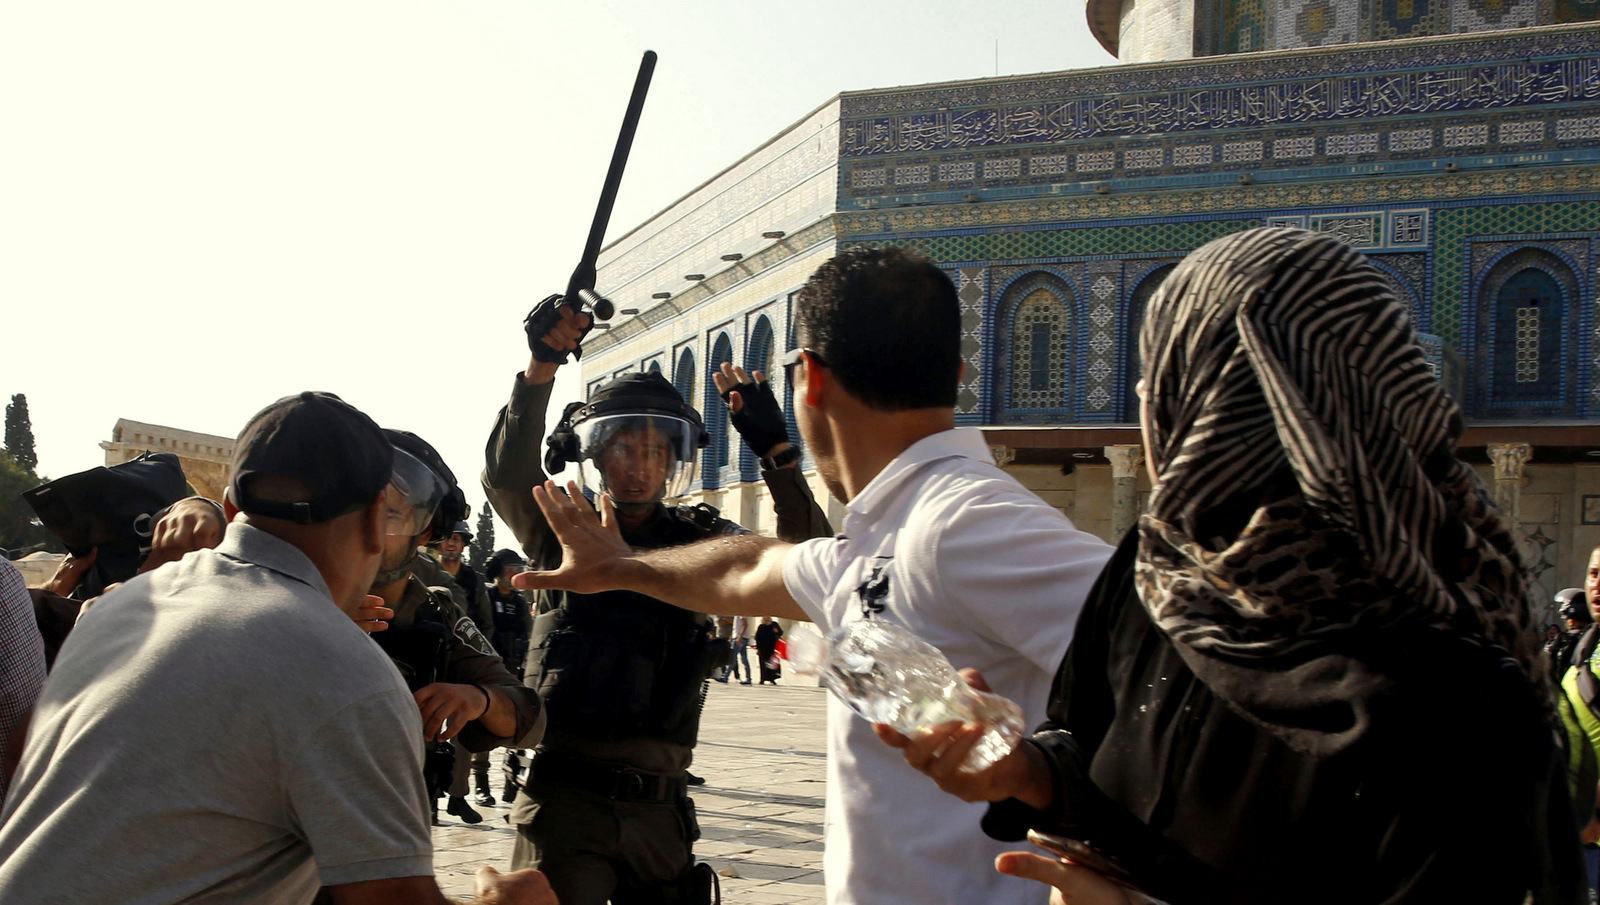 An Israeli police officer raises his baton on Palestinians worshipers near the Al Aqsa Mosque in Jerusalem's Old City, July 27, 2017 (AP/Mahmoud Illean)